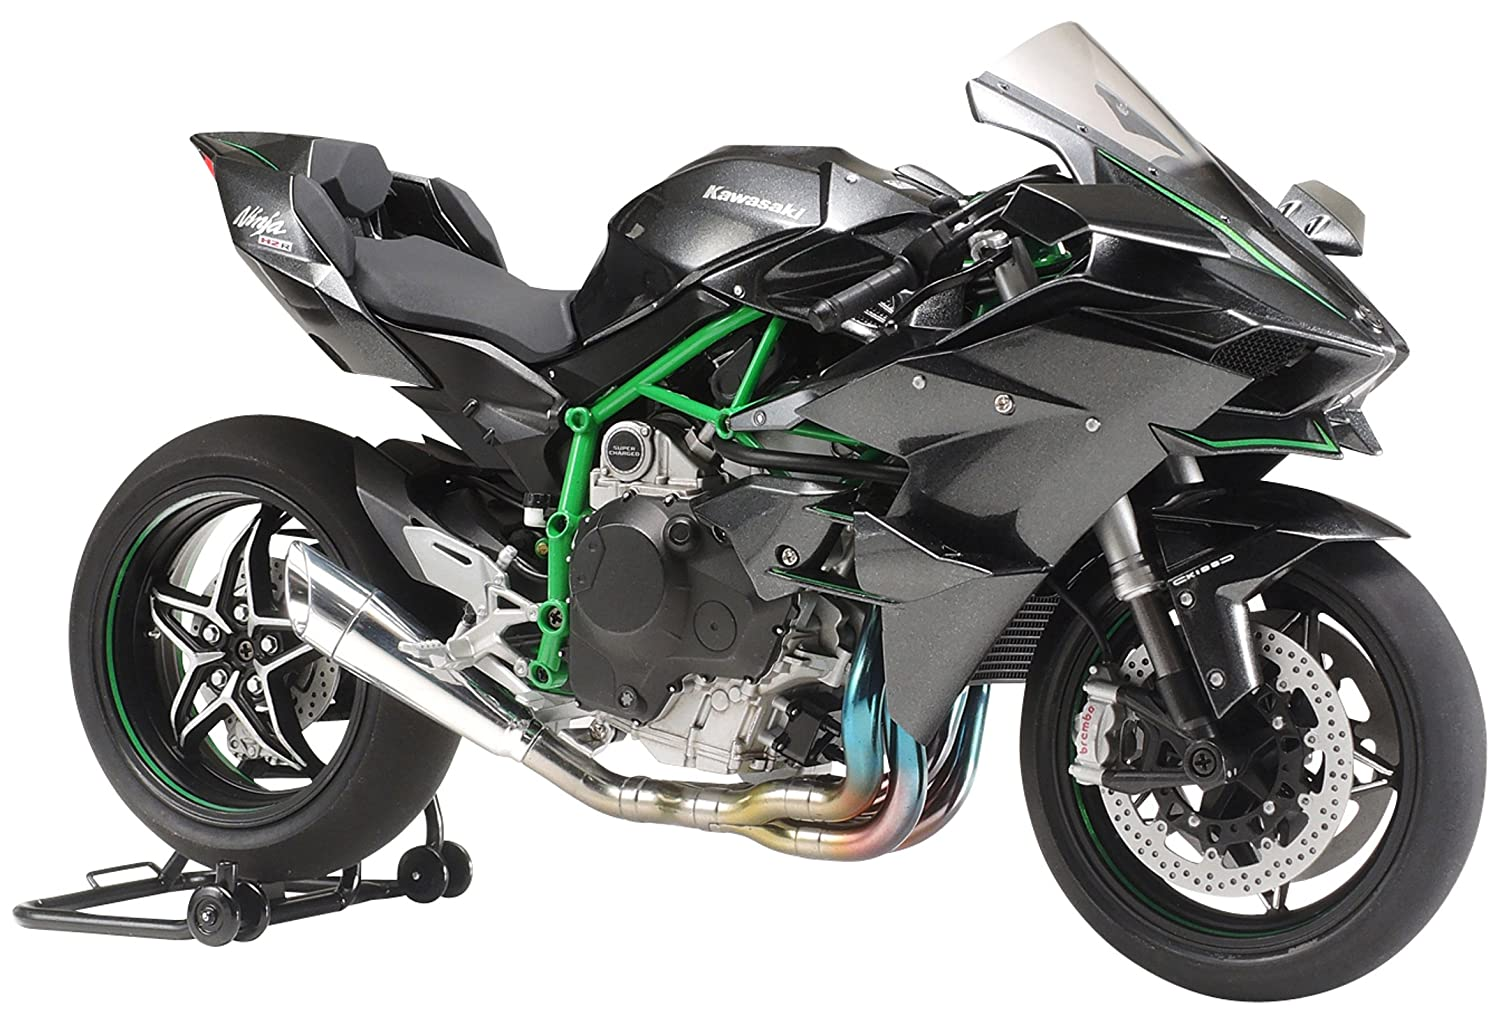 Amazon.com: Tamiya 1/12 Motorcycle Series No.131 Kawasaki Ninja H2R